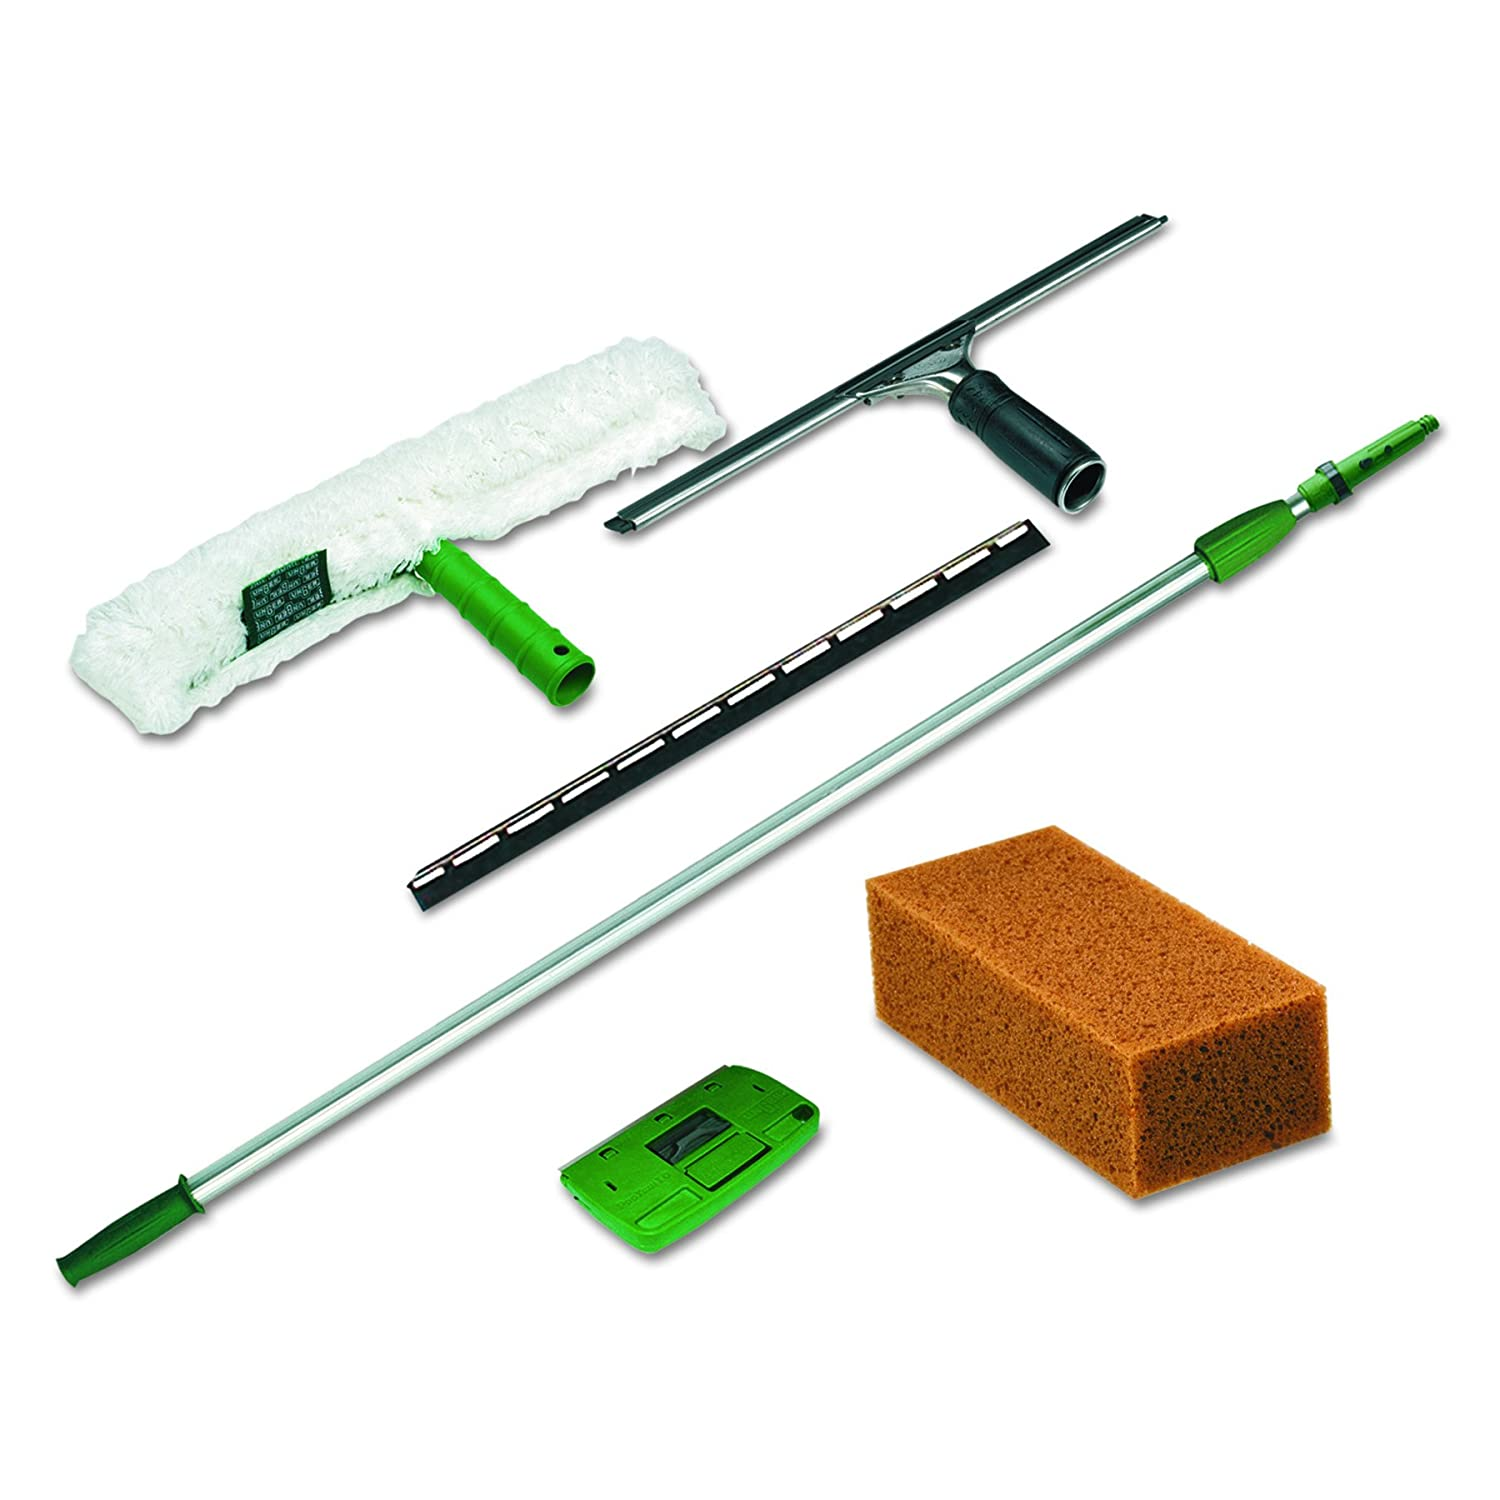 Squeegees & Window Cleaning Equipment